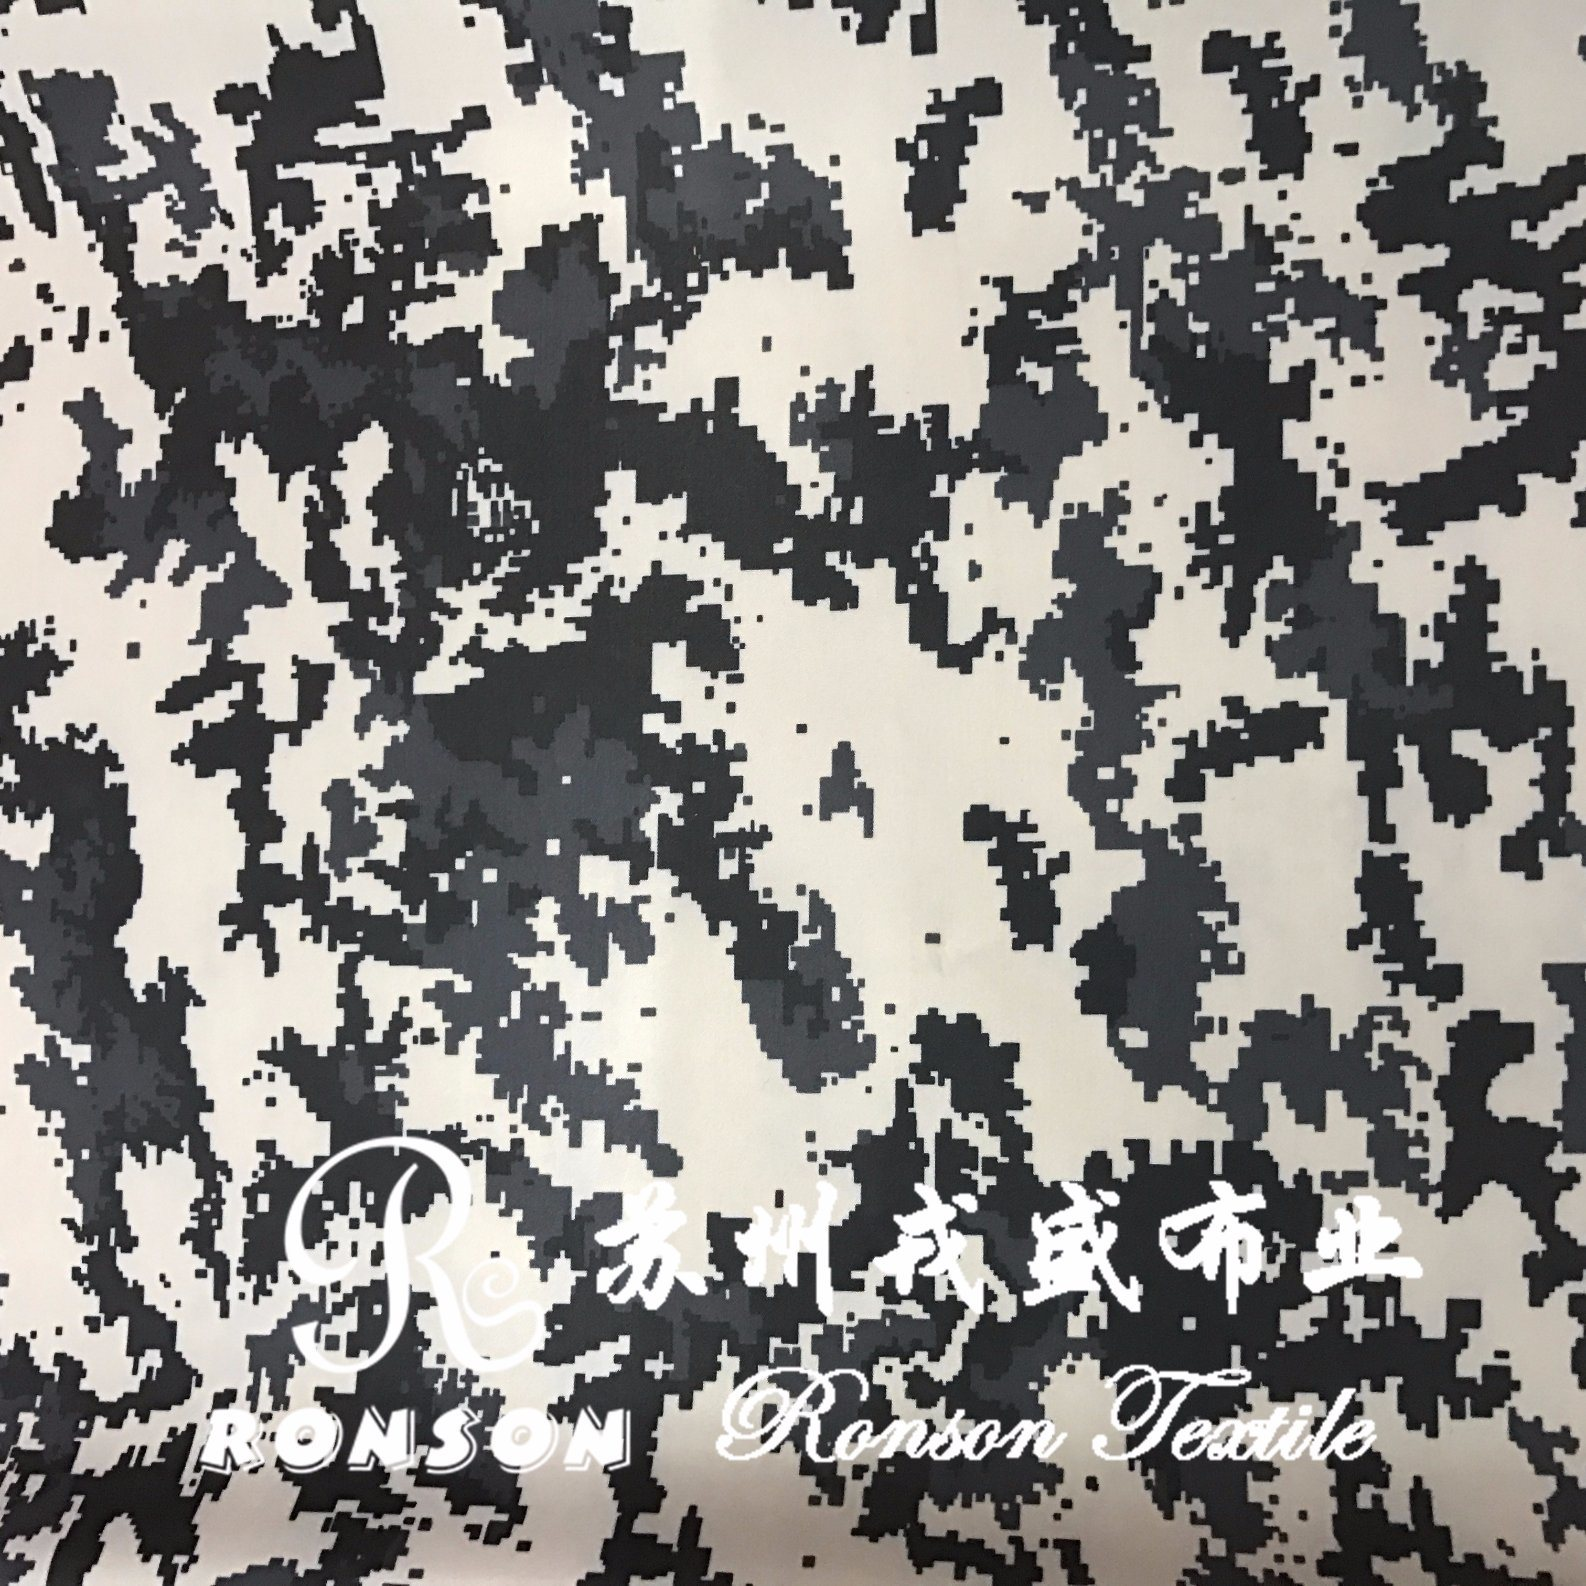 Digital Camo Polyester Oxford, 600d*600d PVC Coated, Waterproof for Bags, Tents, Raincoats